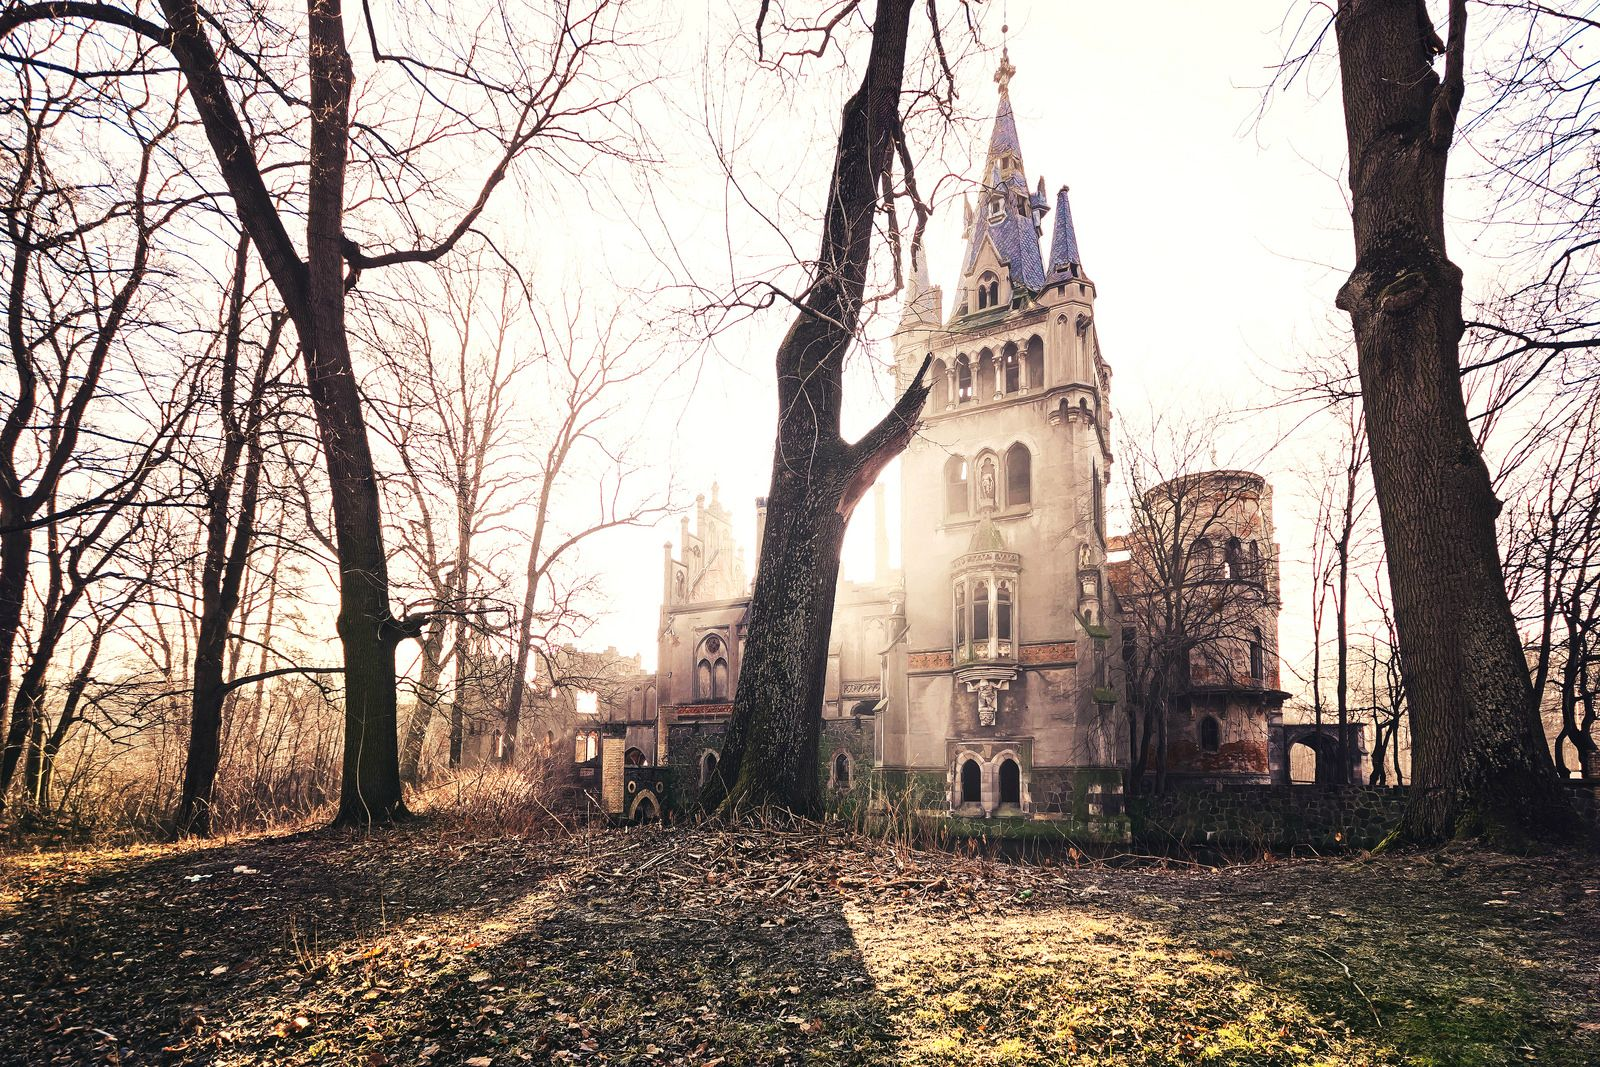 An abandoned mansion in the country